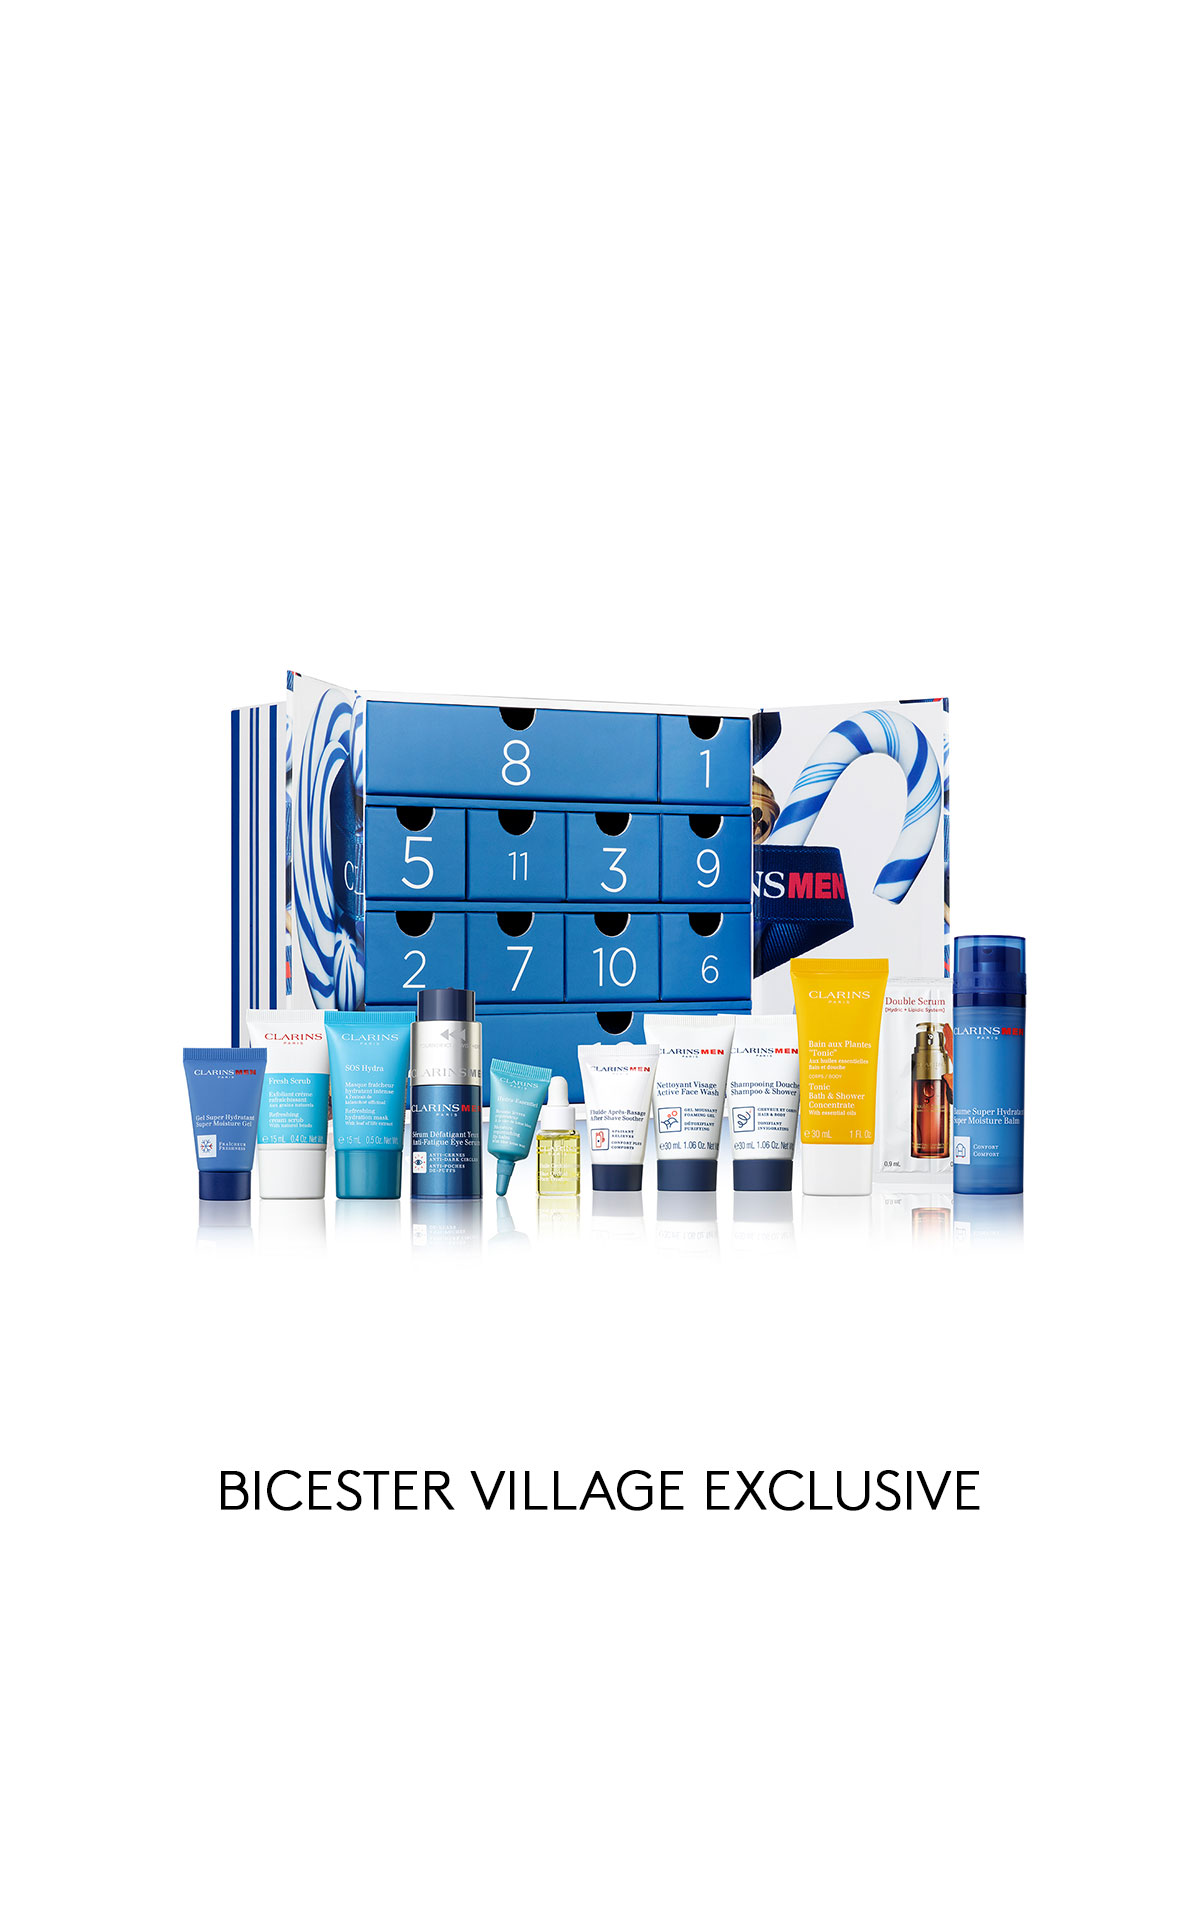 Clarins Men's advent calendar from Bicester Village